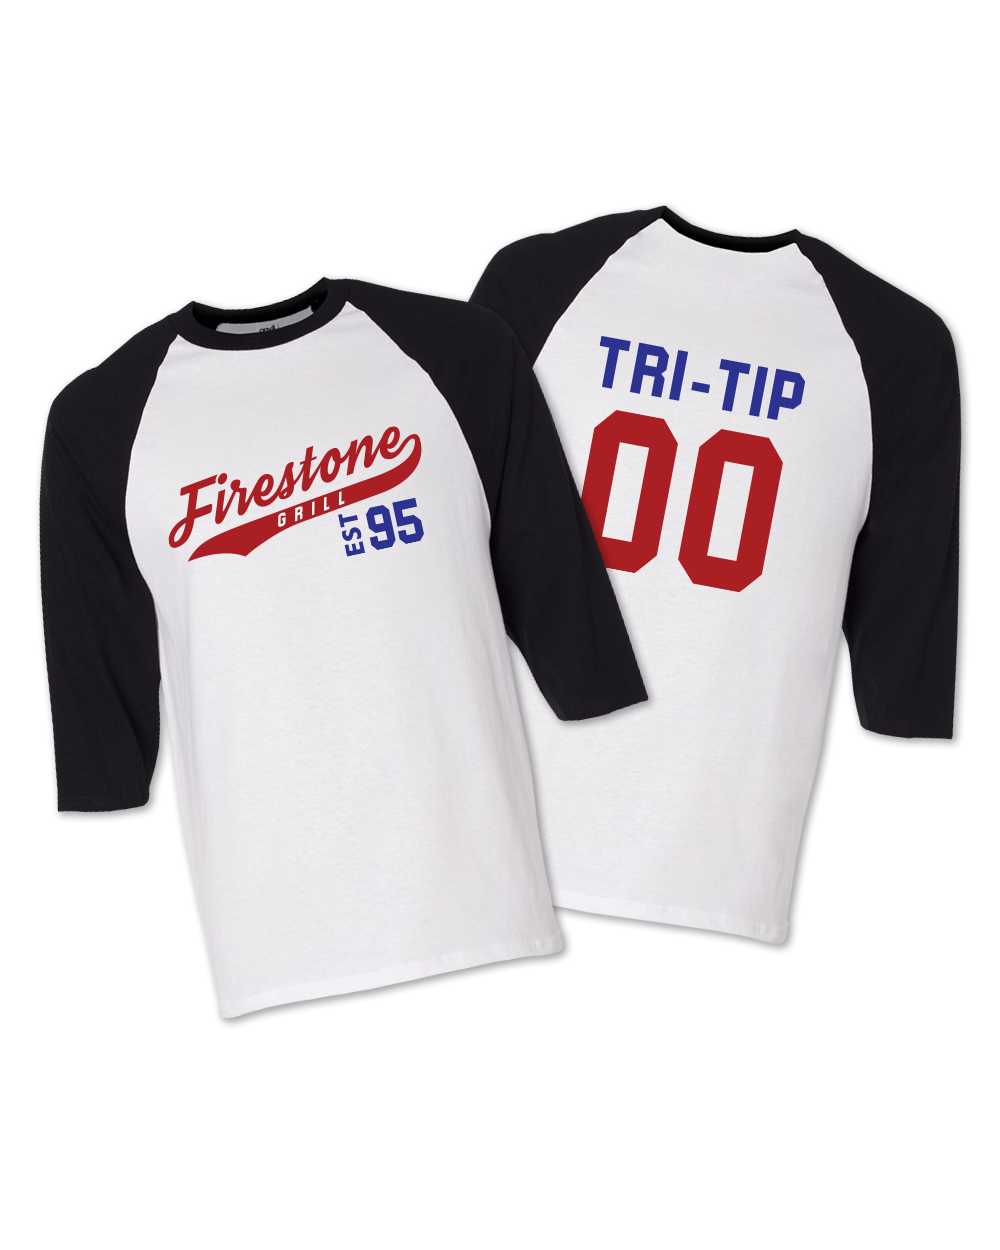 firesetone_baseball_tee_mock_up_katie (Peters-iMac.local's conflicted copy 2017-04-24).png